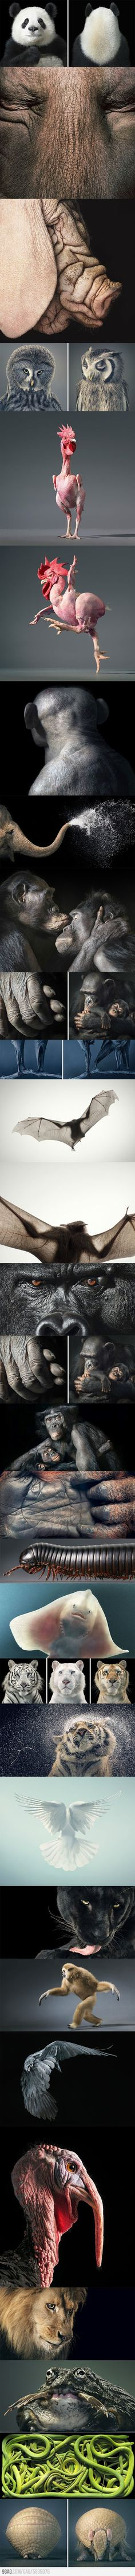 Amazing Animal Portraits by Tim Flach  These beautiful animals and all the others need to be protected by us!